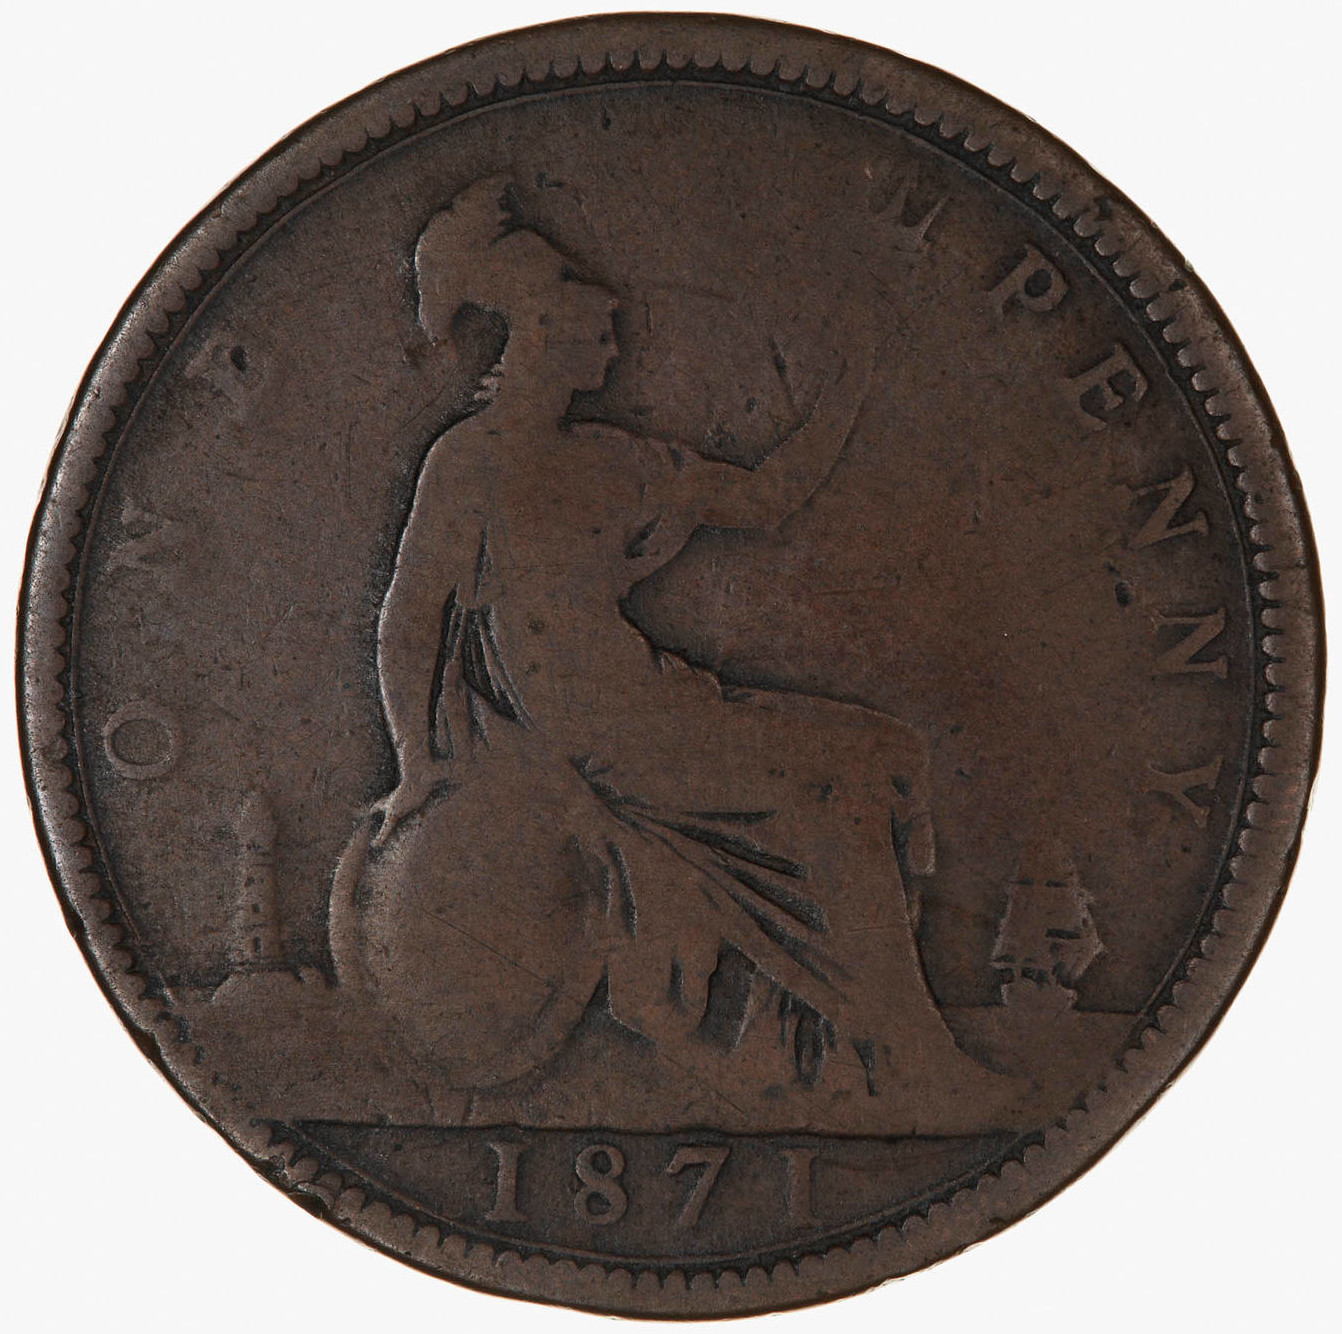 Penny 1871: Photo Coin - Penny, Queen Victoria, Great Britain, 1871